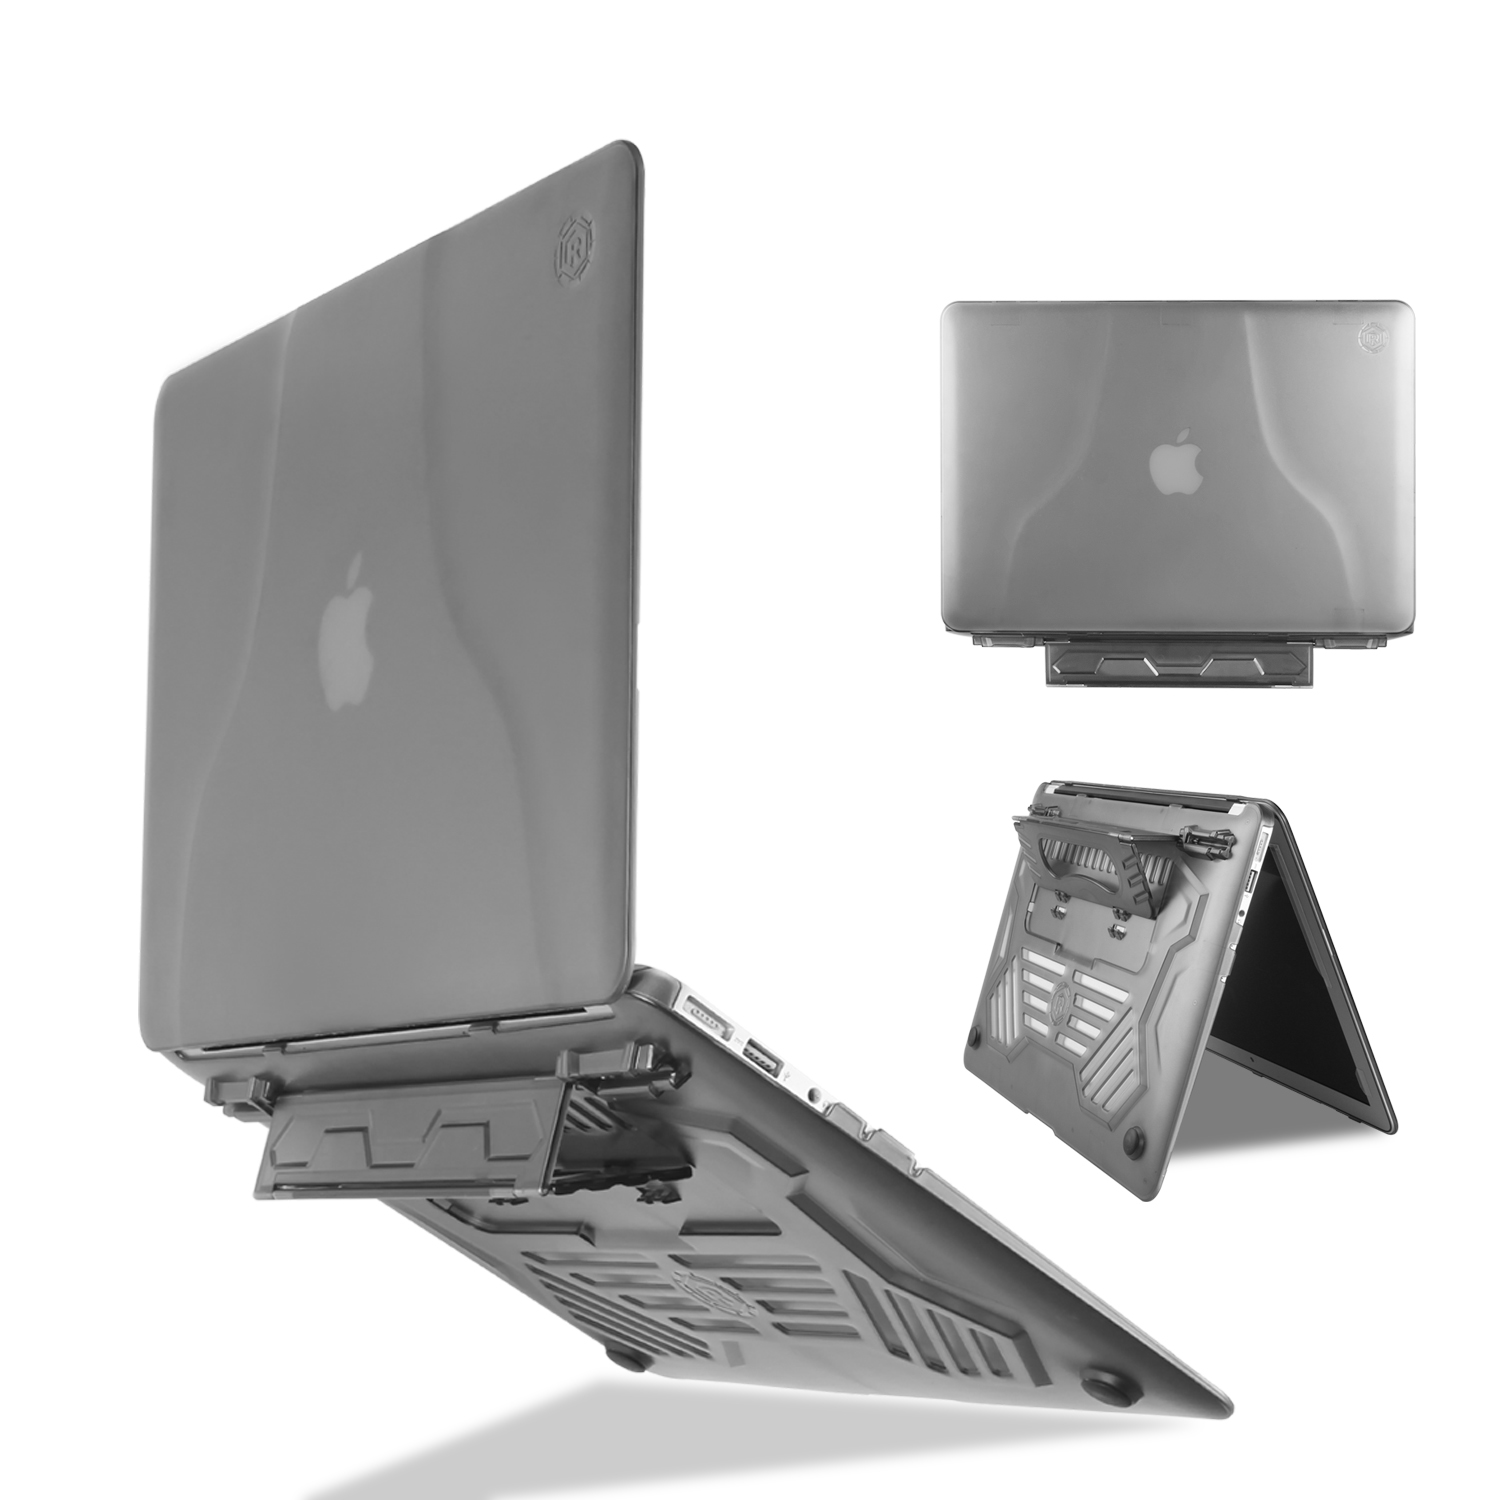 Unique multi-angle stand + portable matte <font><b>case</b></font> for the <font><b>MacBook</b></font> <font><b>Air</b></font> <font><b>13</b></font> inch A1369 <font><b>A1466</b></font>+<font><b>Transparent</b></font> keyboard cover image